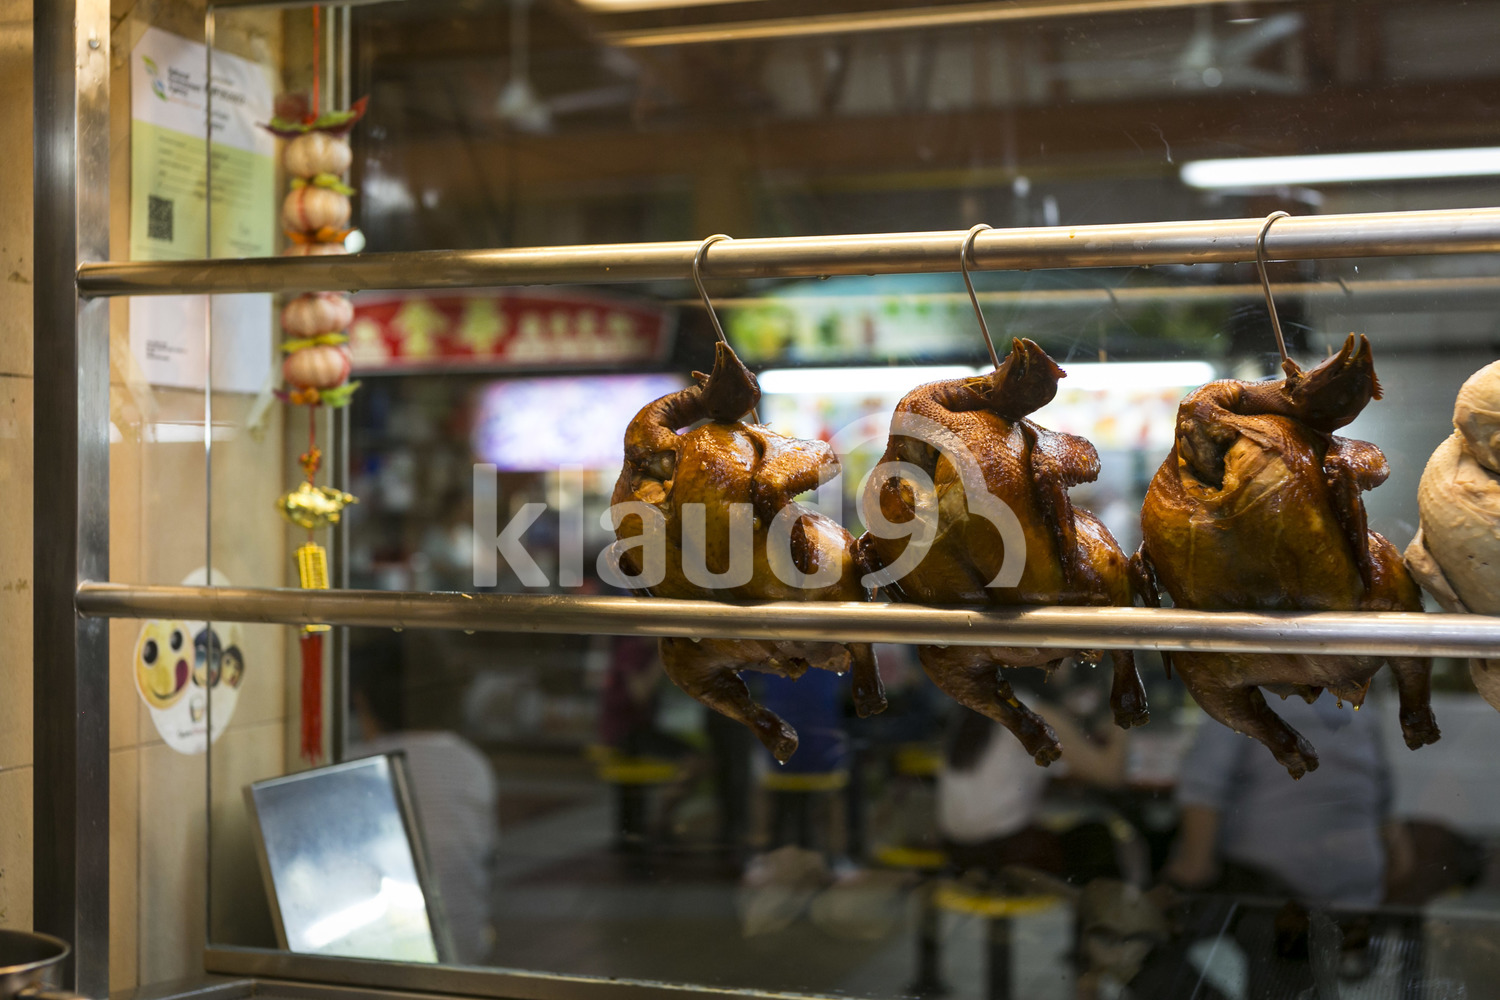 Skewed chickens in a hawker